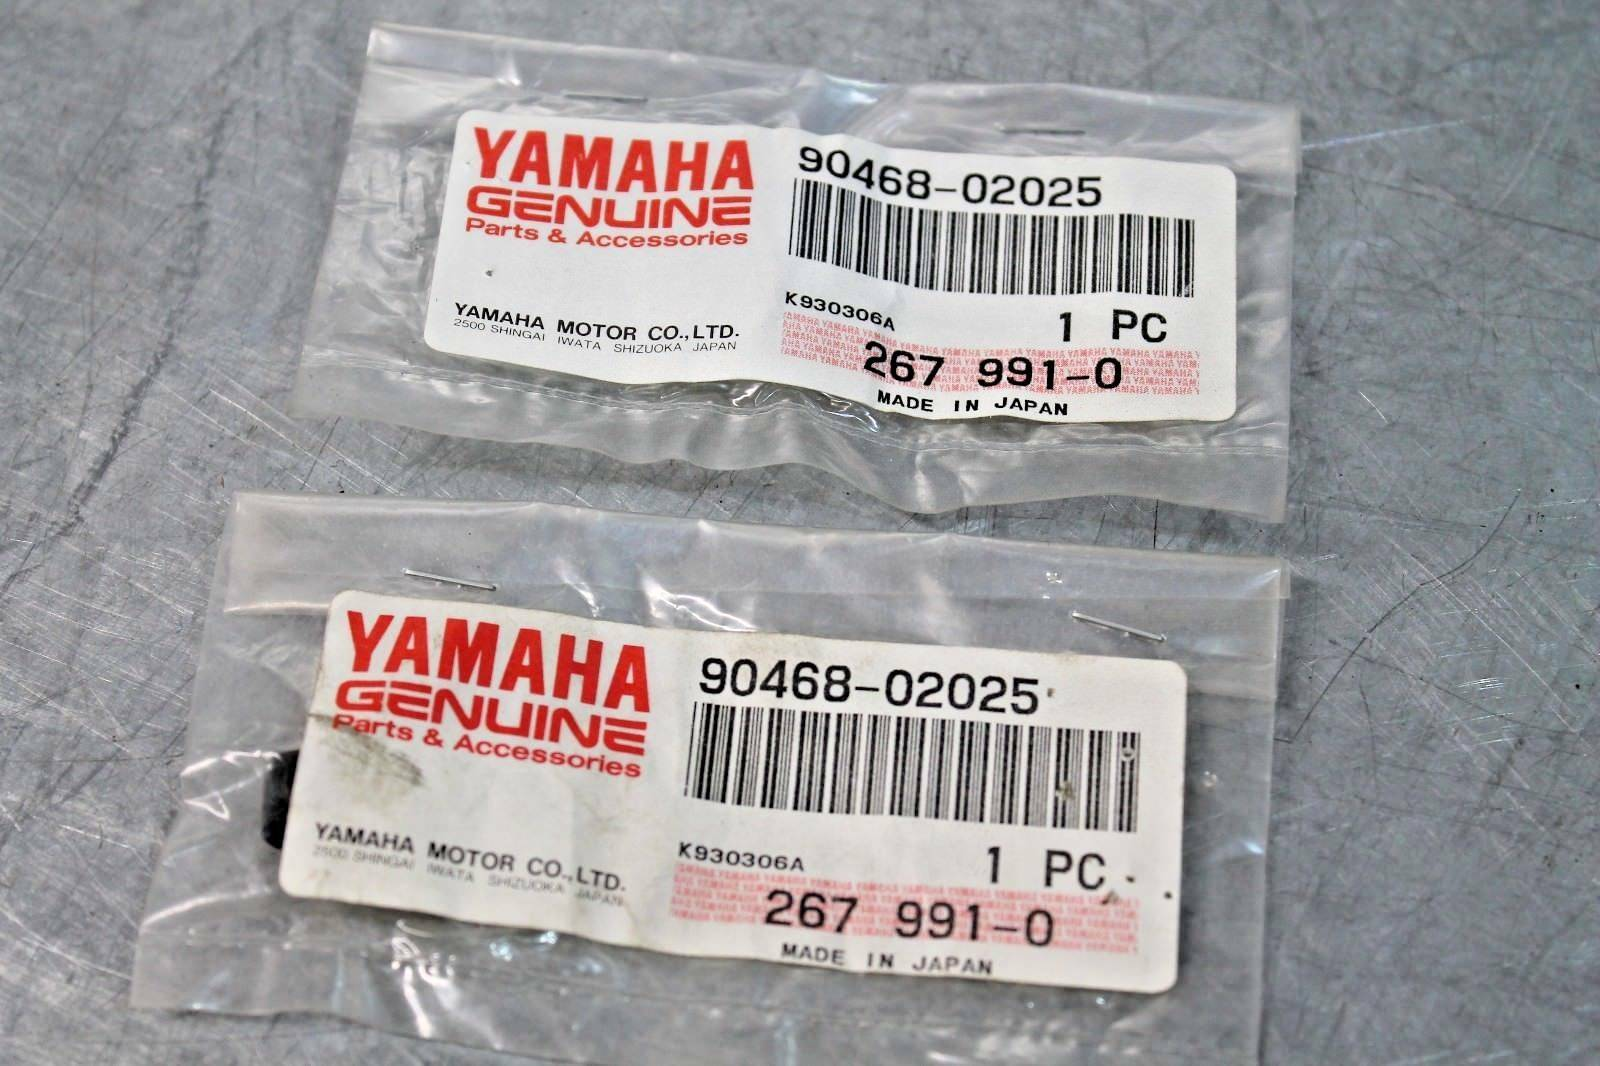 1977 Yamaha Enticer 250 Oil Line Wiring Diagram Oem Many Models In Listing Pump Clip 1600x1066